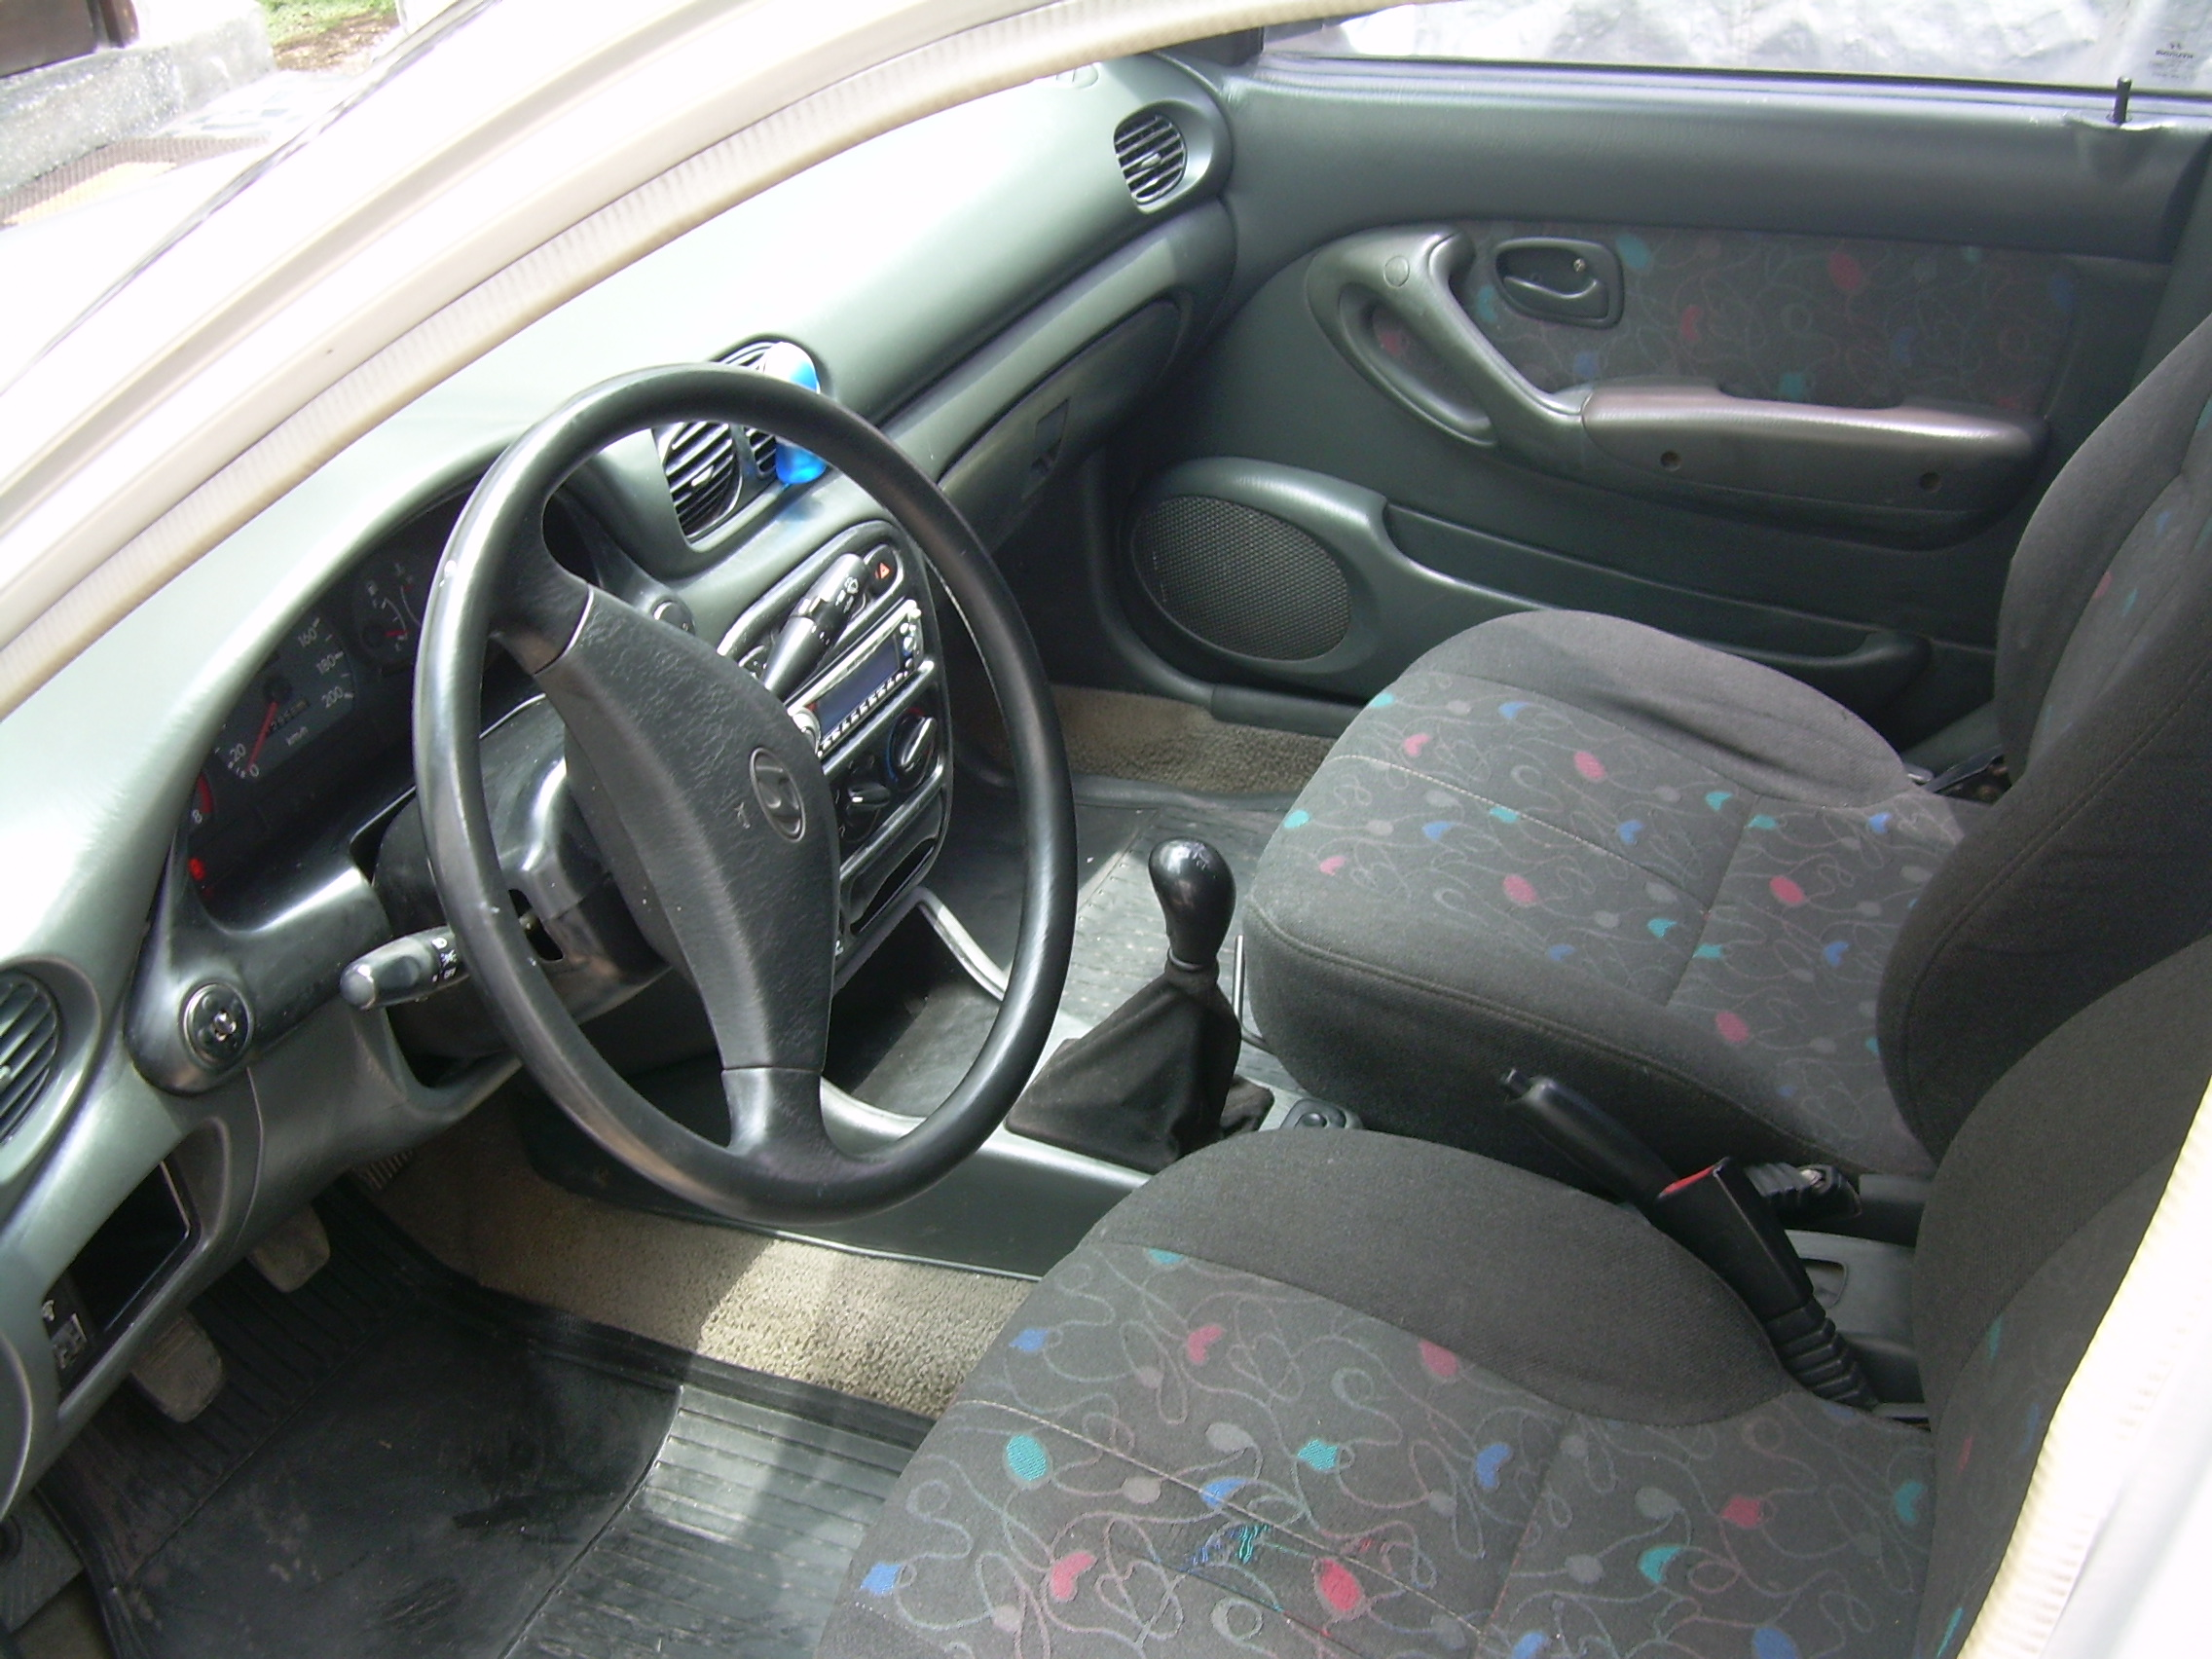 1996 Hyundai Accent Information And Photos Zombiedrive